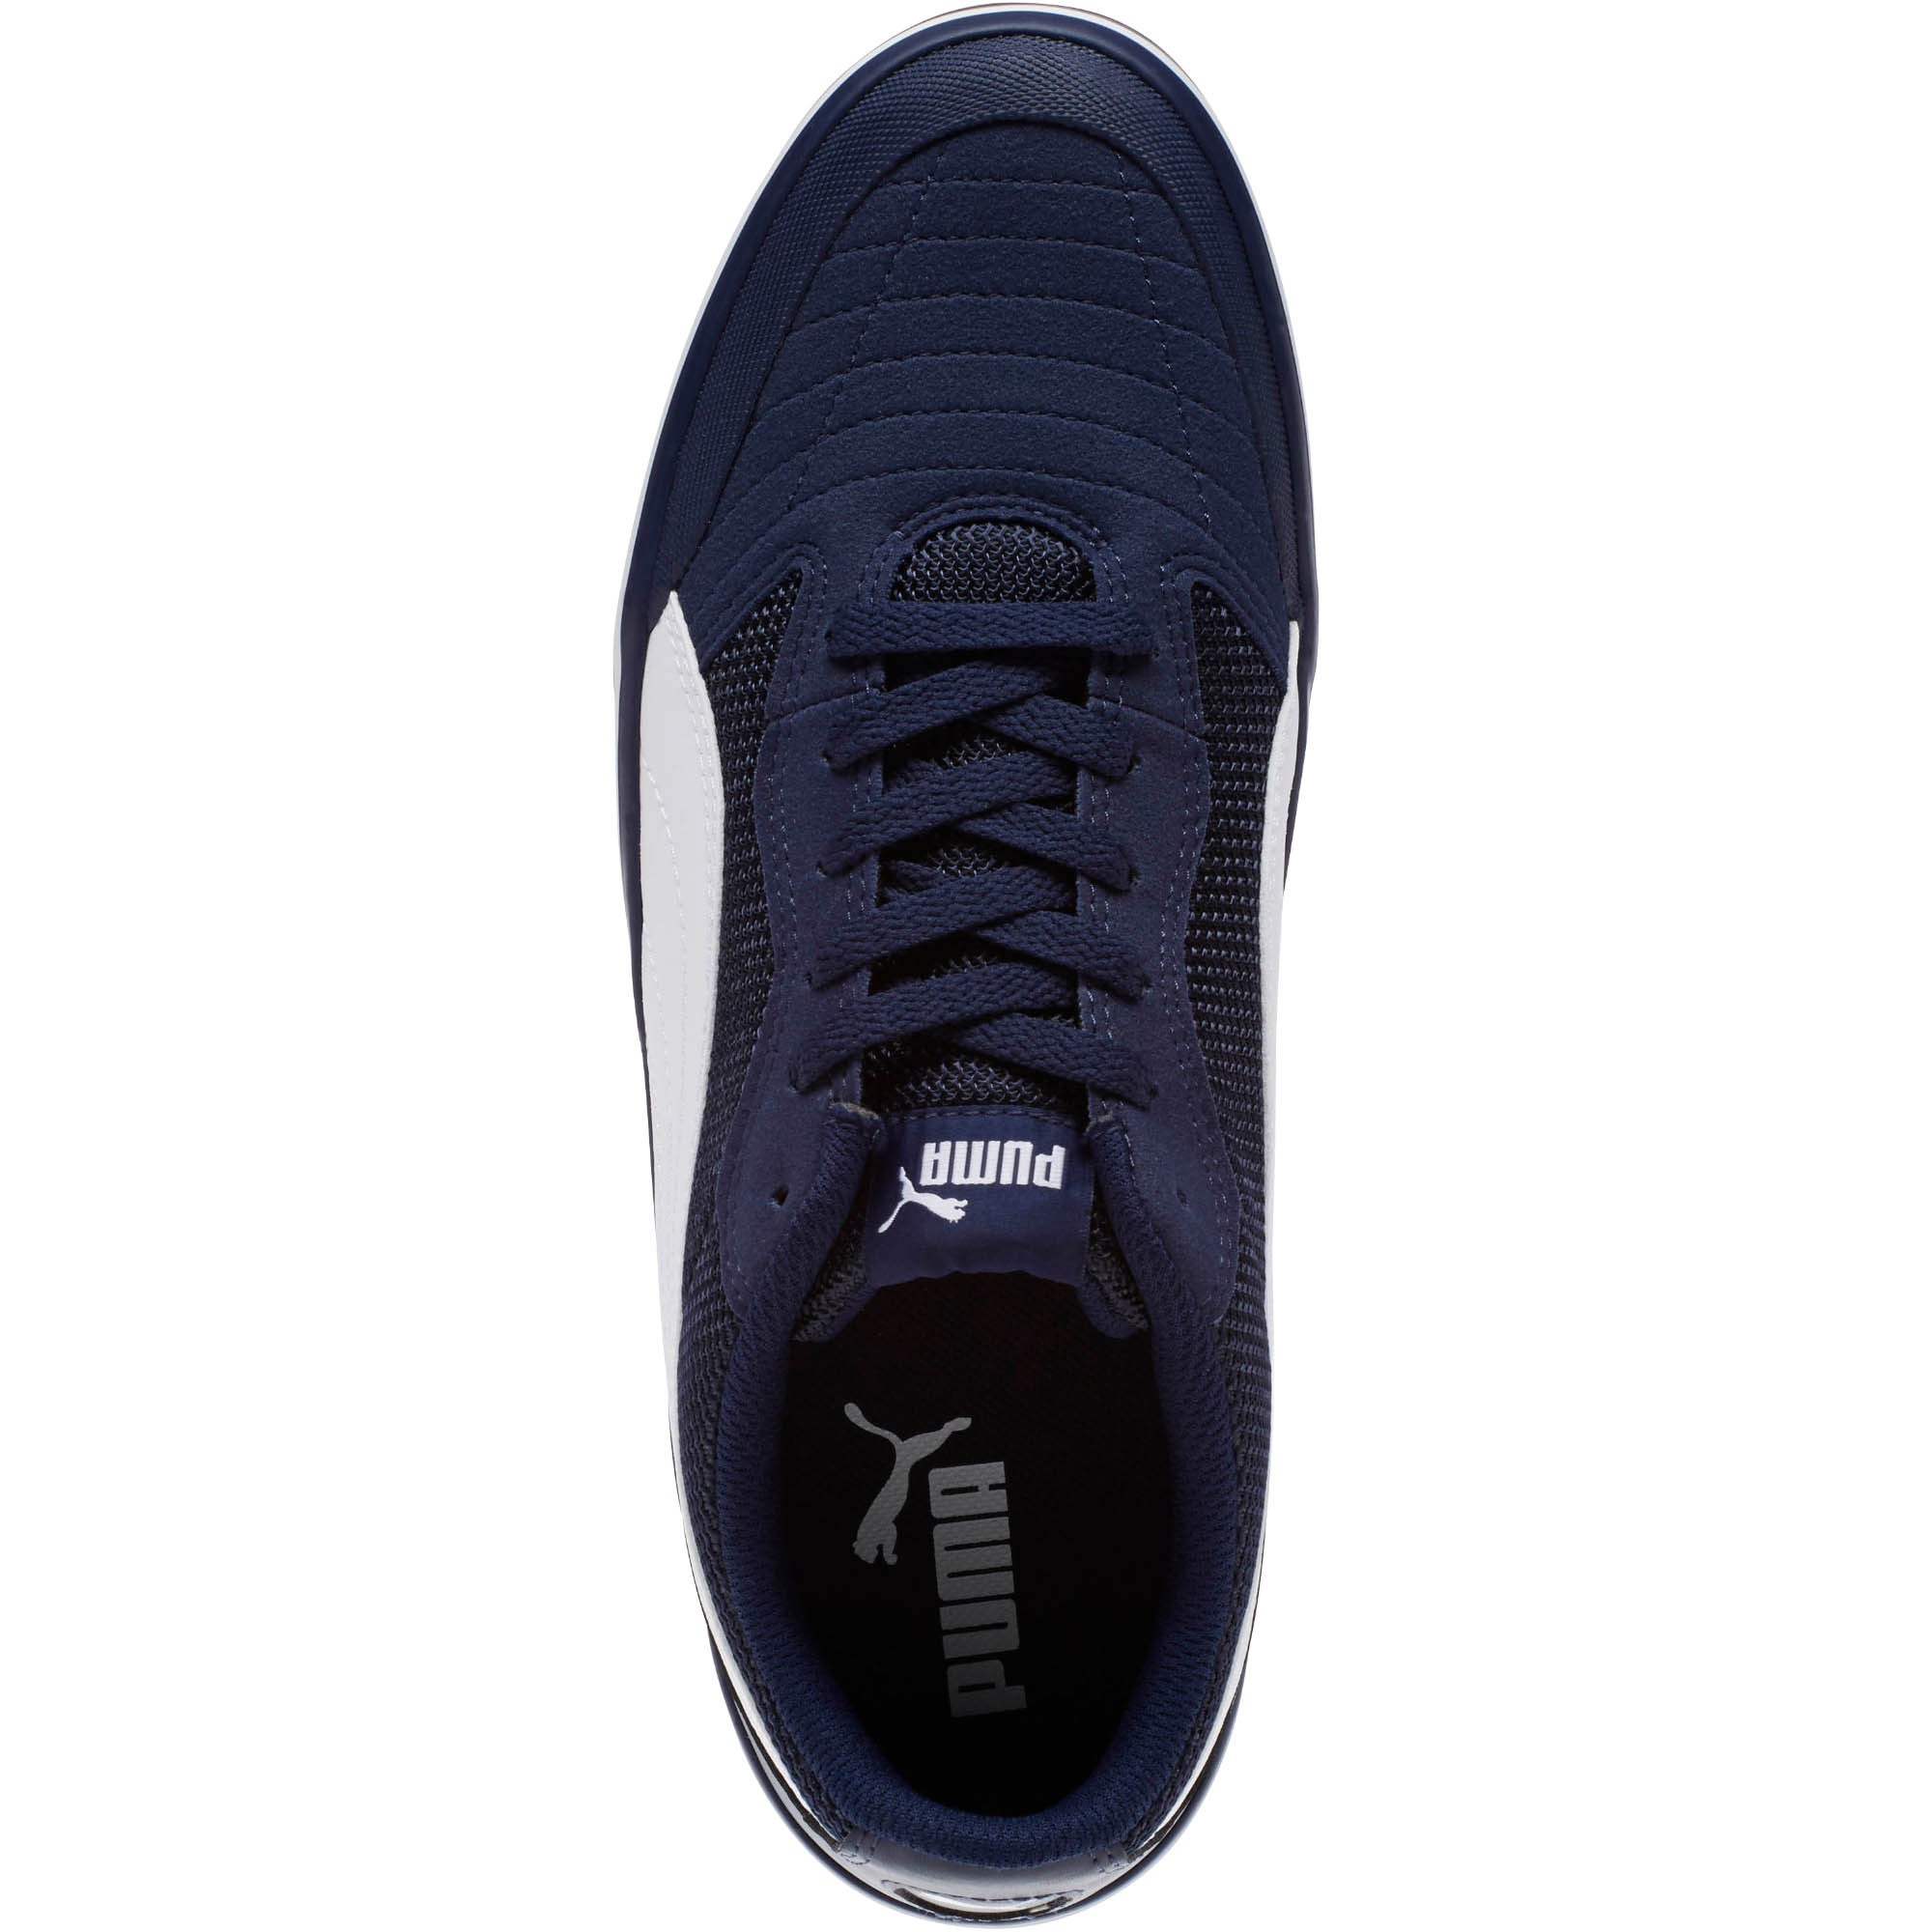 PUMA-Men-039-s-Astro-Sala-Sneakers thumbnail 10